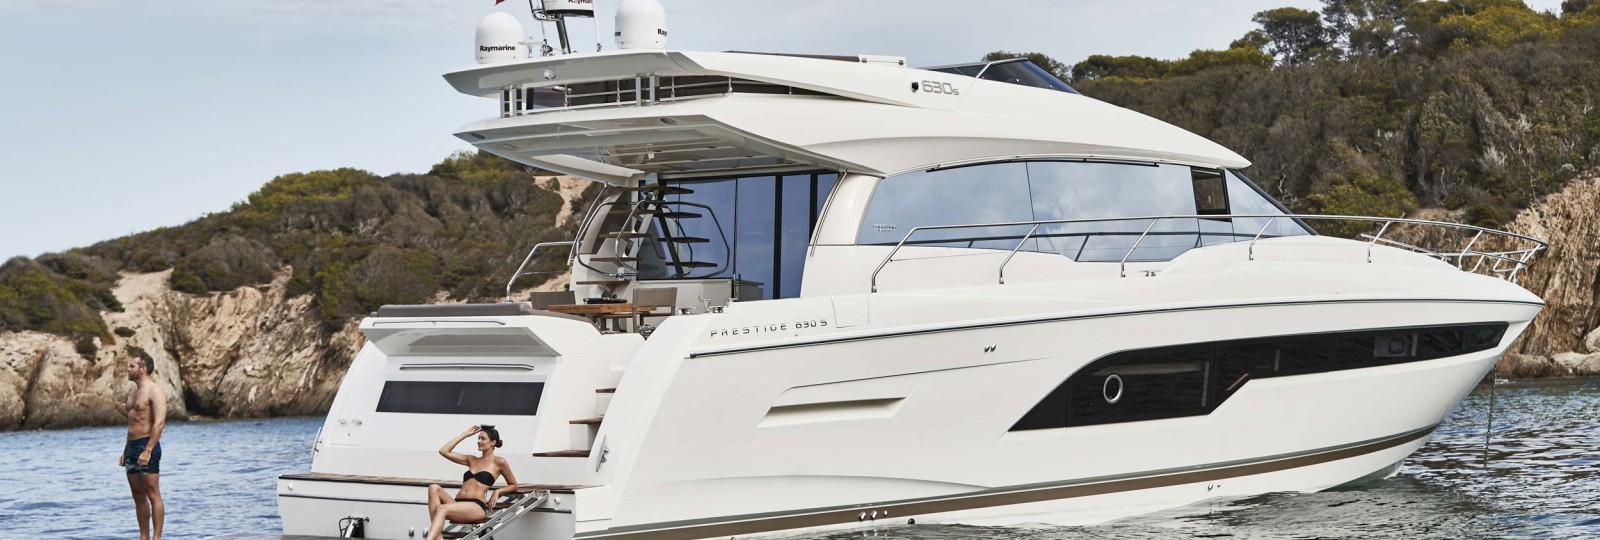 Prestige Yachts 630s at anchor